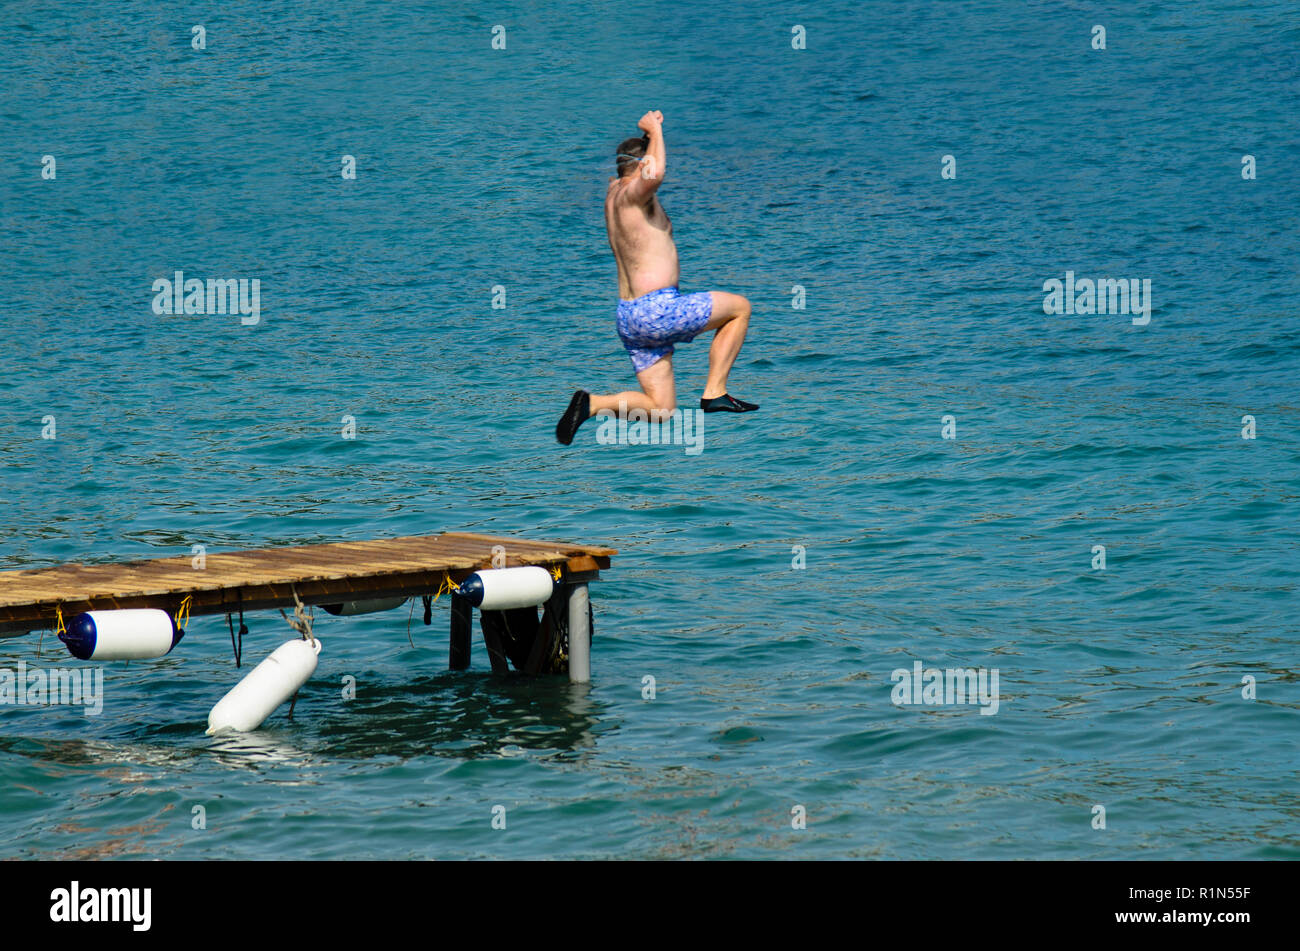 Man in swimsuit jumping into the sea from a wooden pier, wearing black rubber shoes Stock Photo